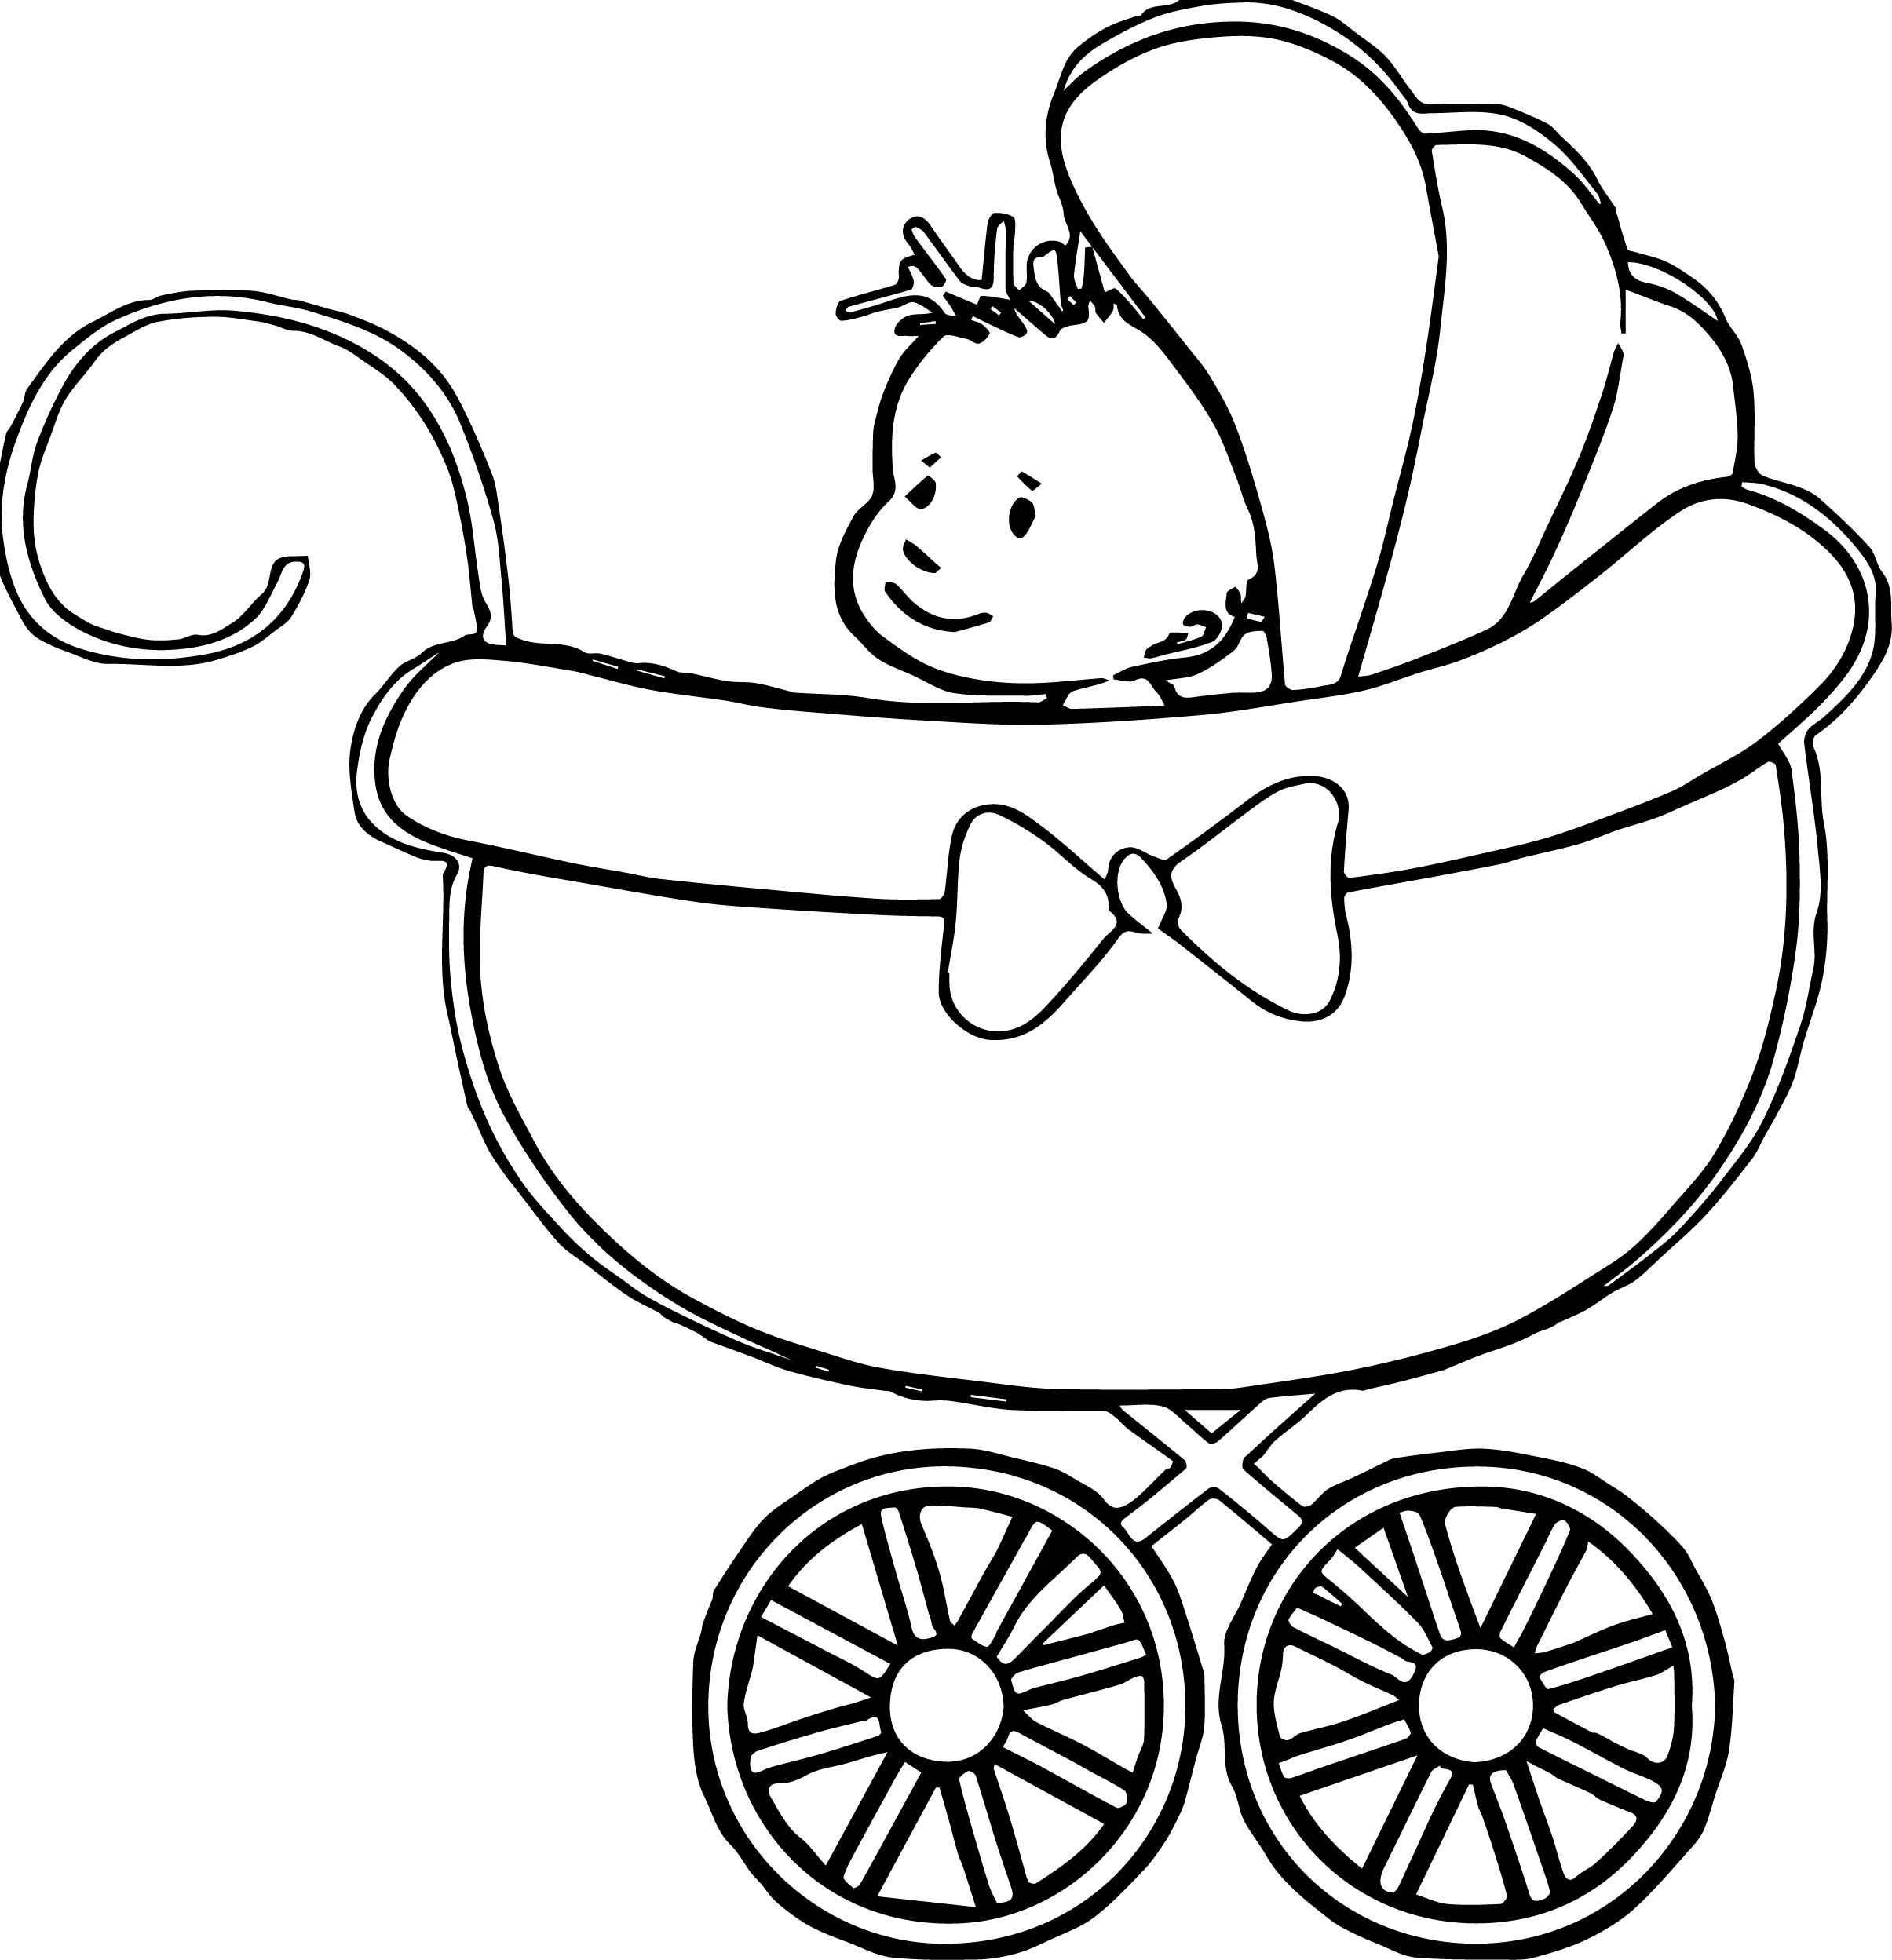 The Stroller Baby Boy Coloring Page